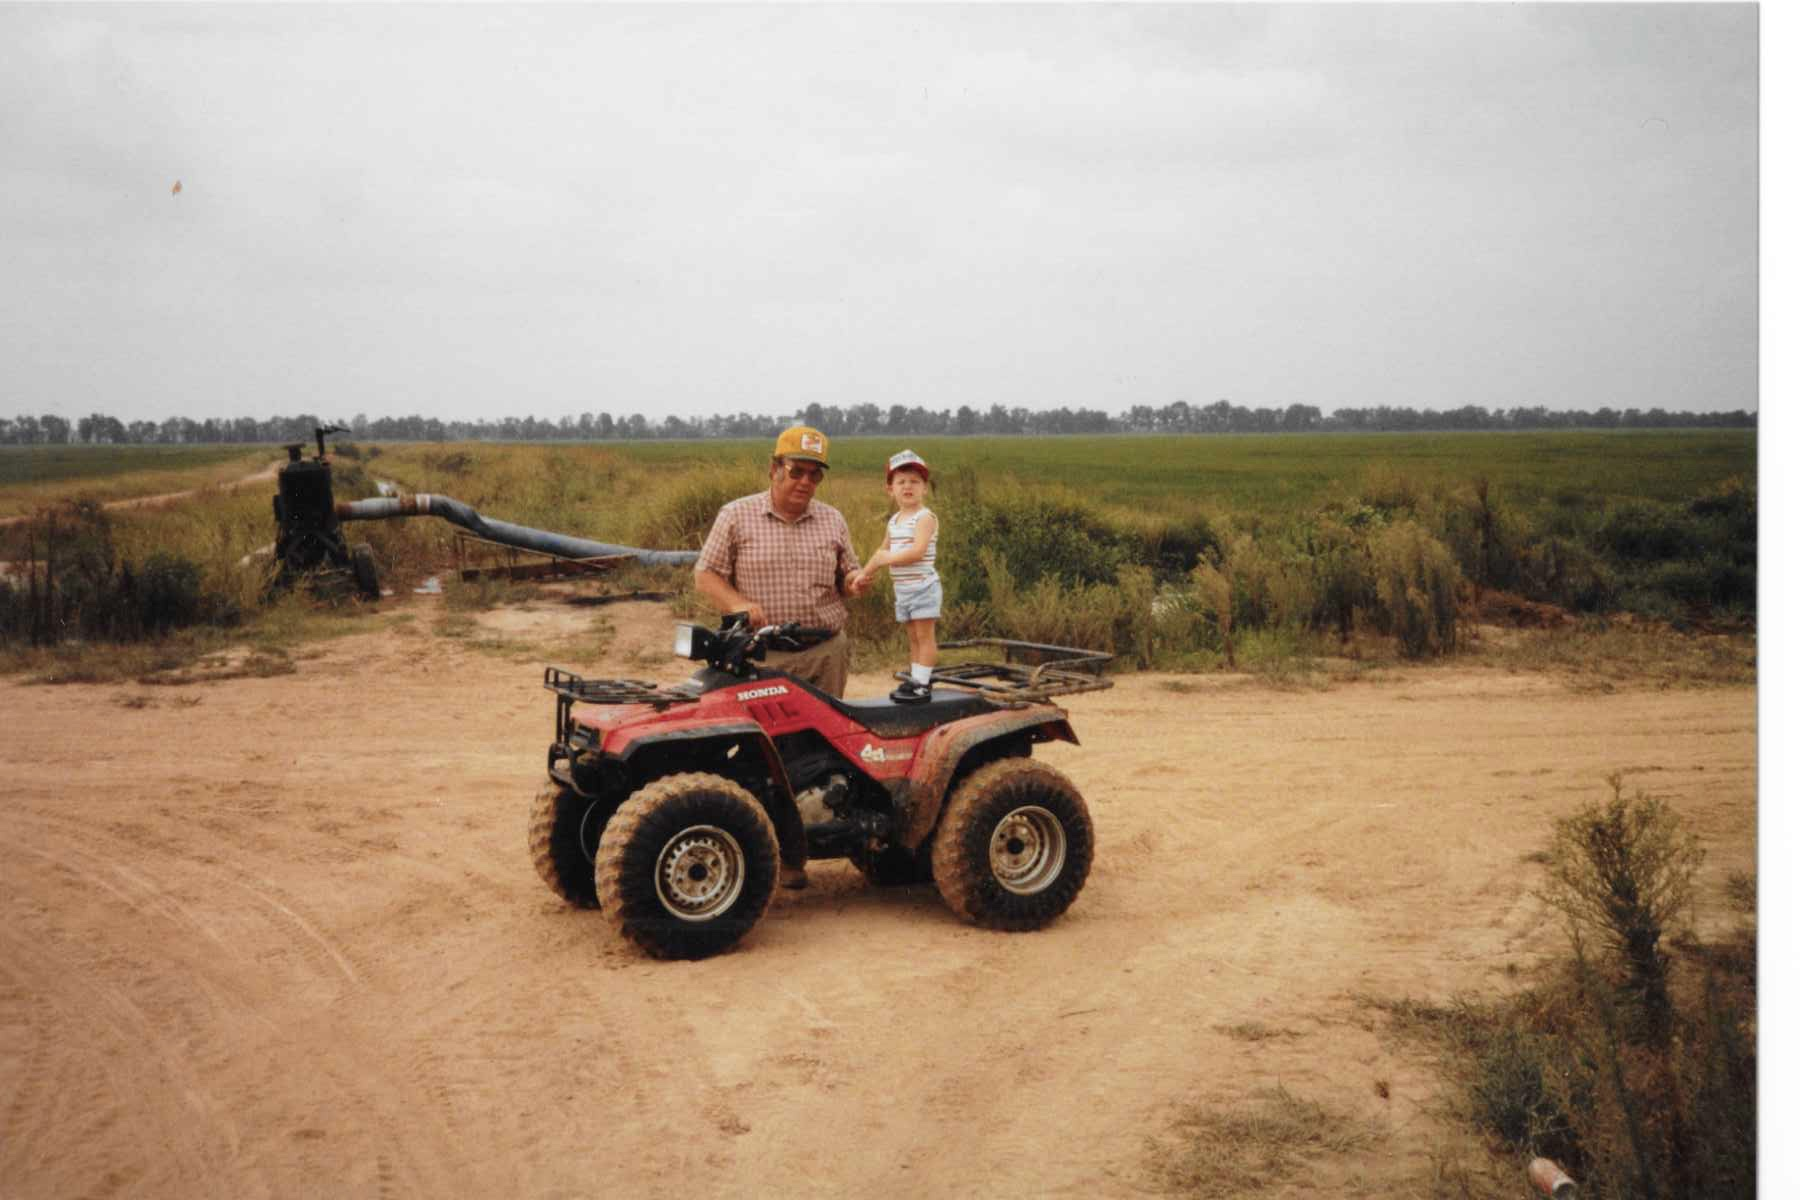 My dad and nephew in front of a well that supplies the water to surrounding rice fields